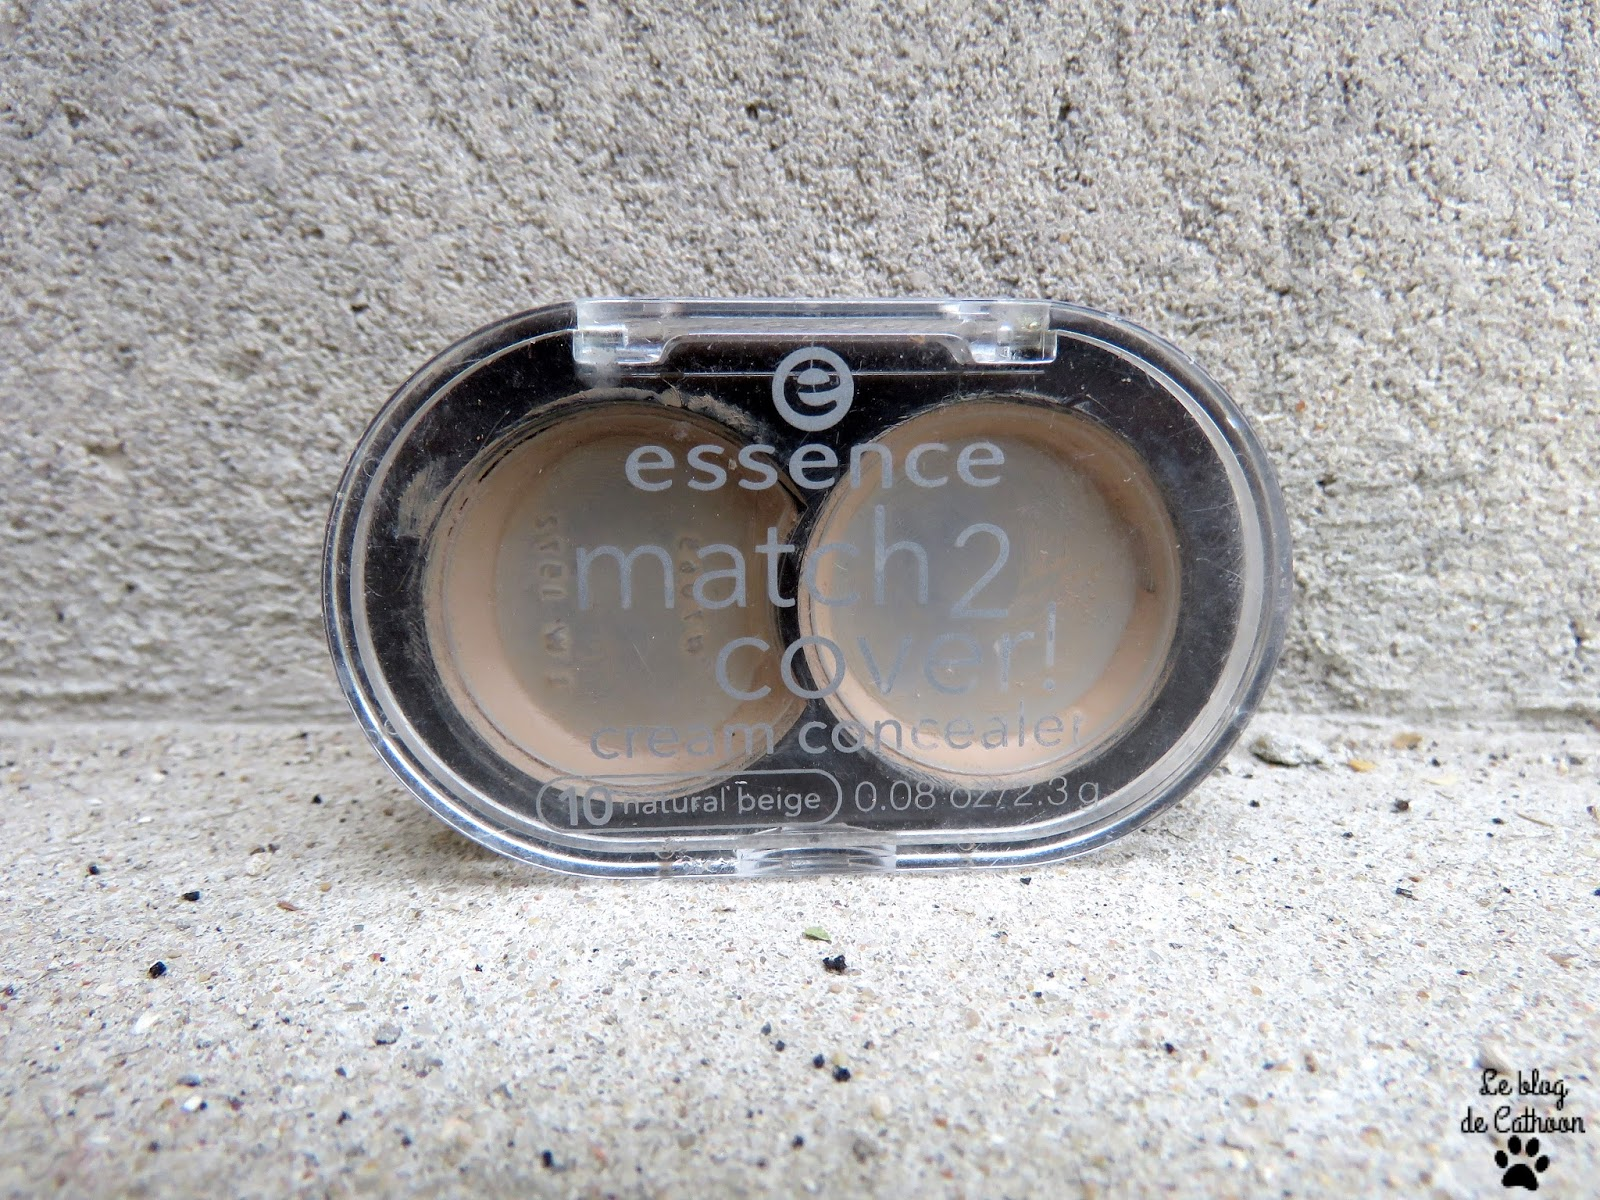 Match 2 Cover - Cream Concealer - Essence